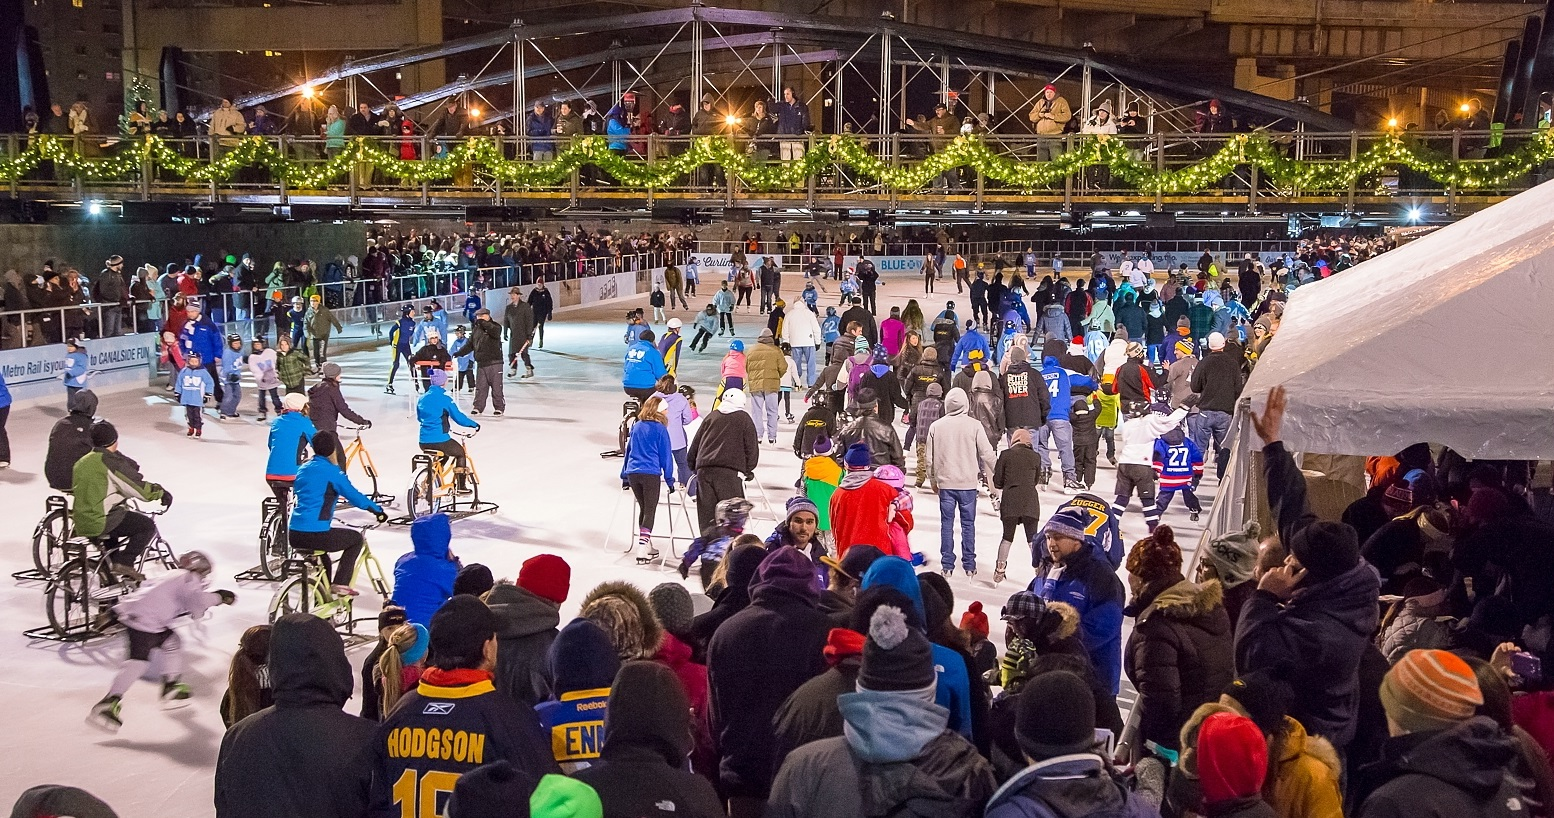 The Ice at Canalside will sparkle on Friday night for the fifth annual Holiday Celebration. (Don Nieman/Special to The News)